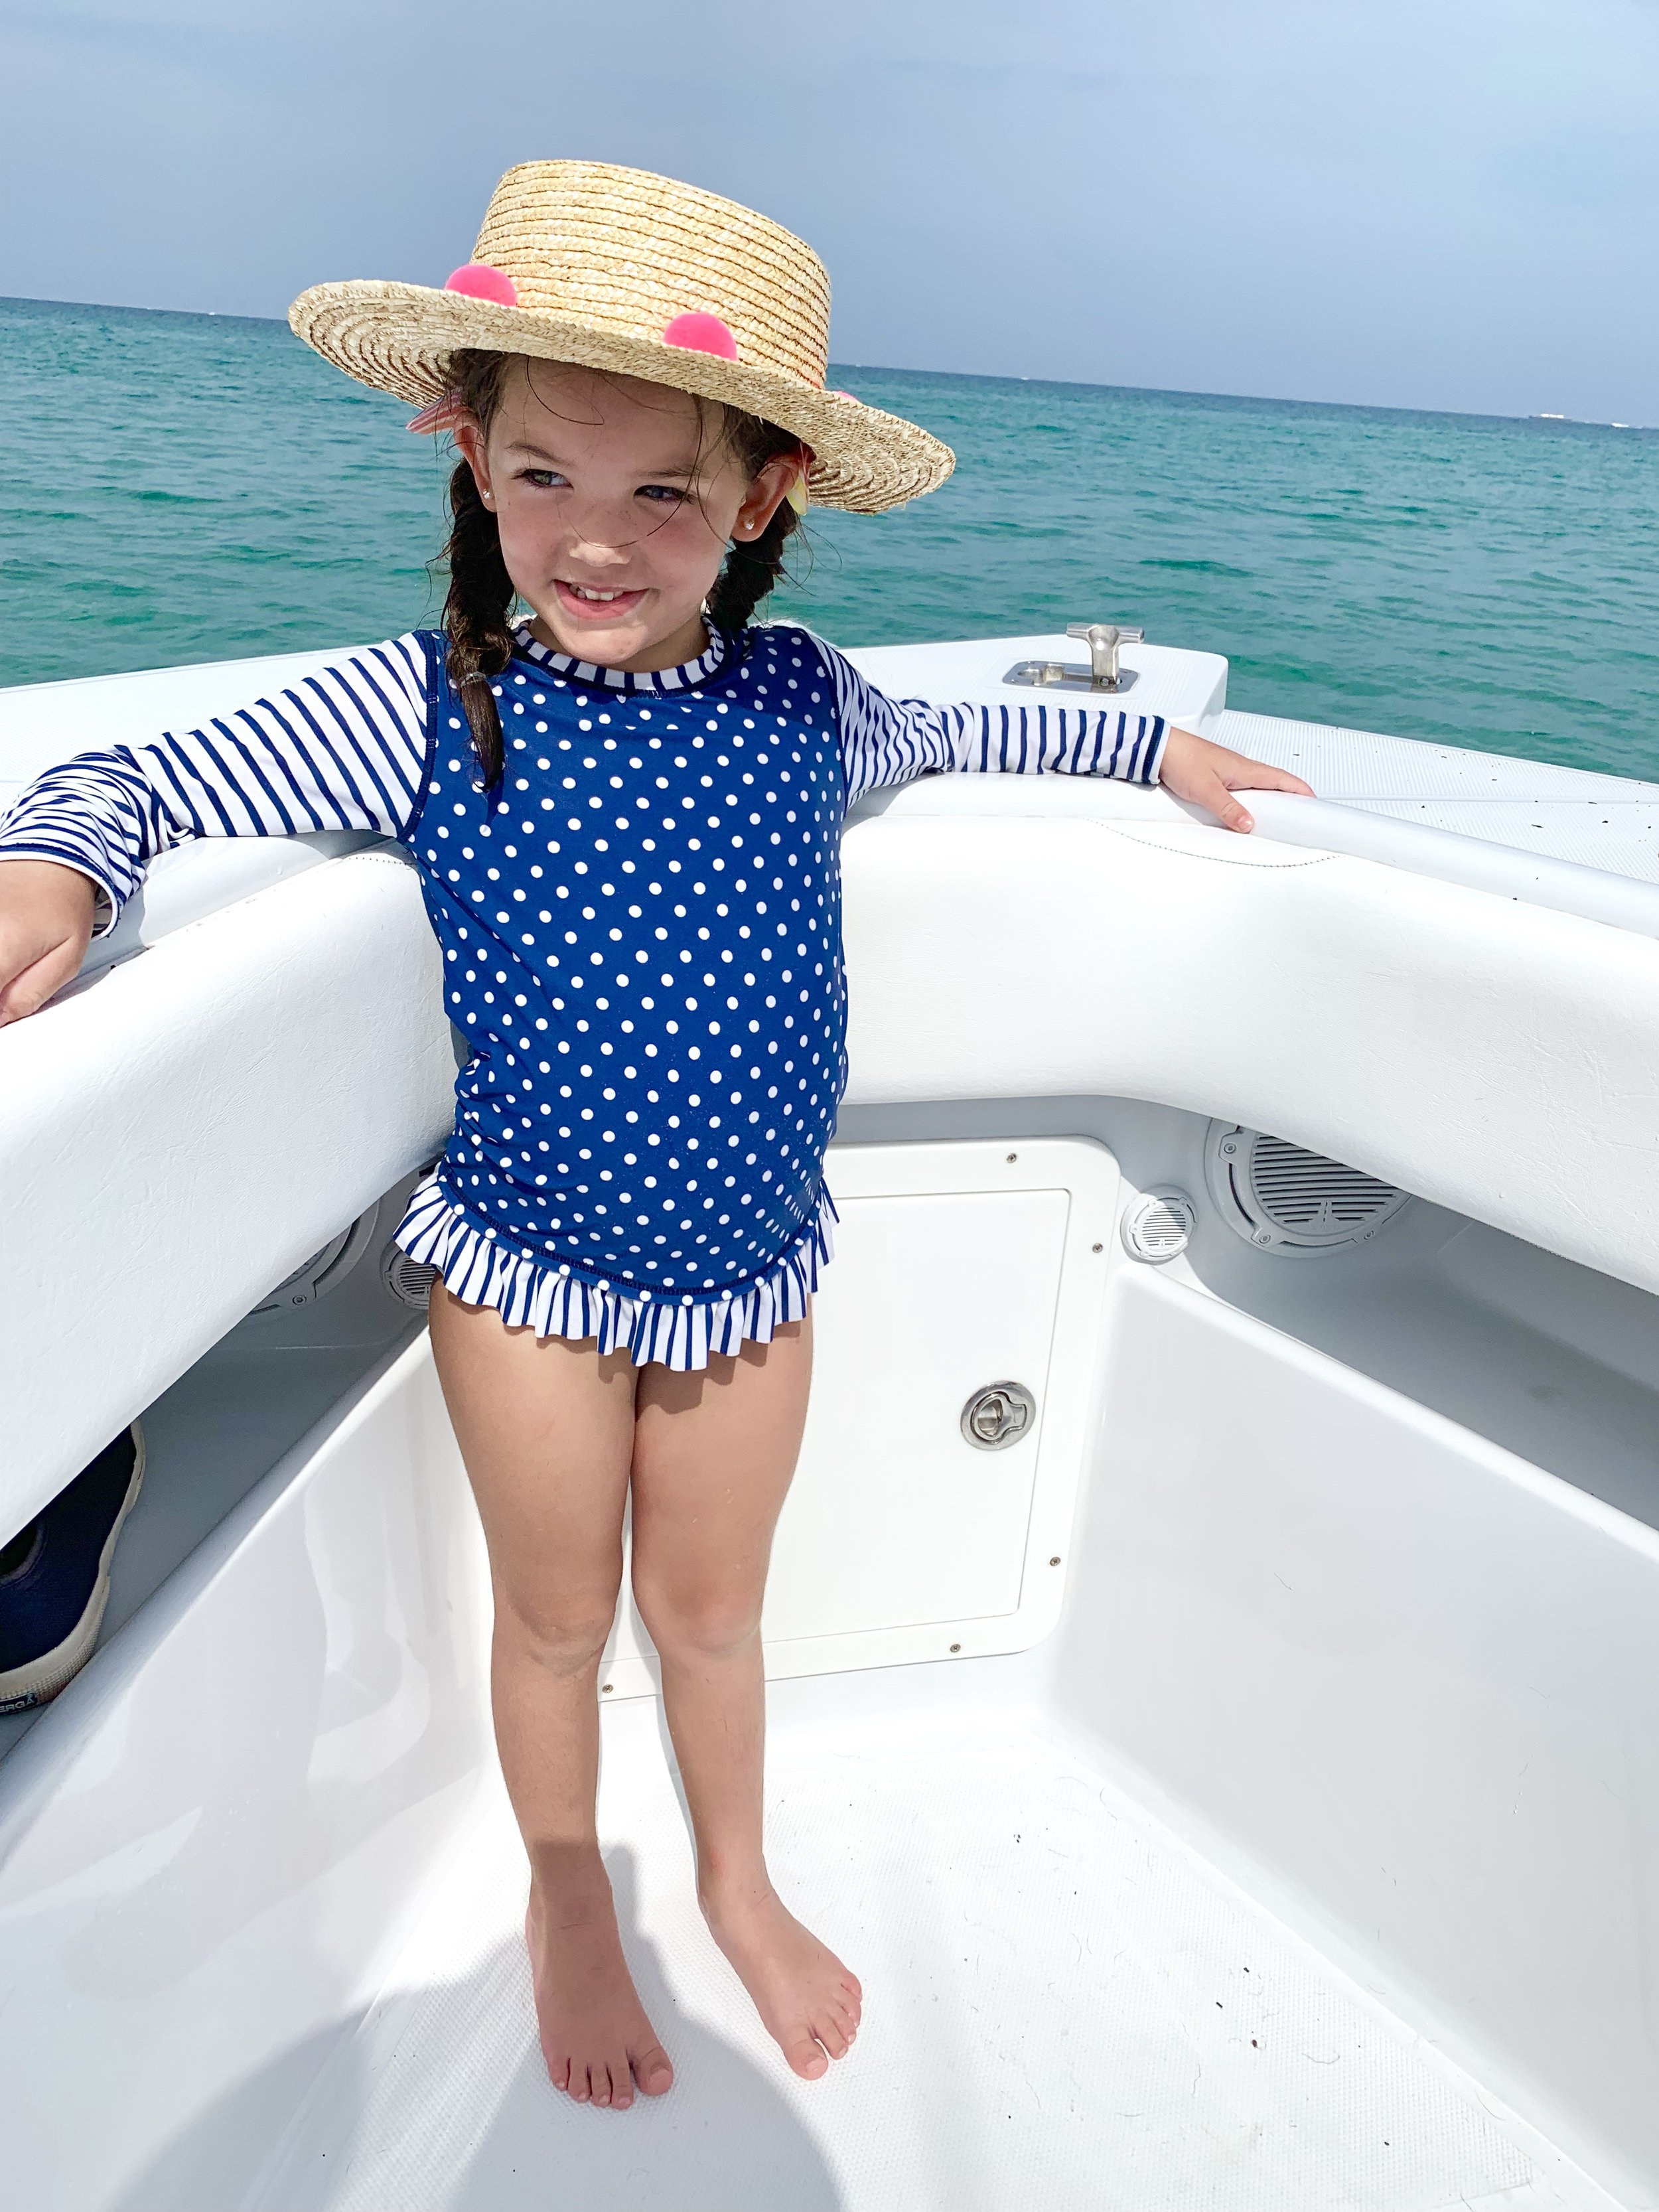 We love our Ruffle Butts rash guard sets and get them at Mother Goose Miami. I take sun prevention seriously these days.